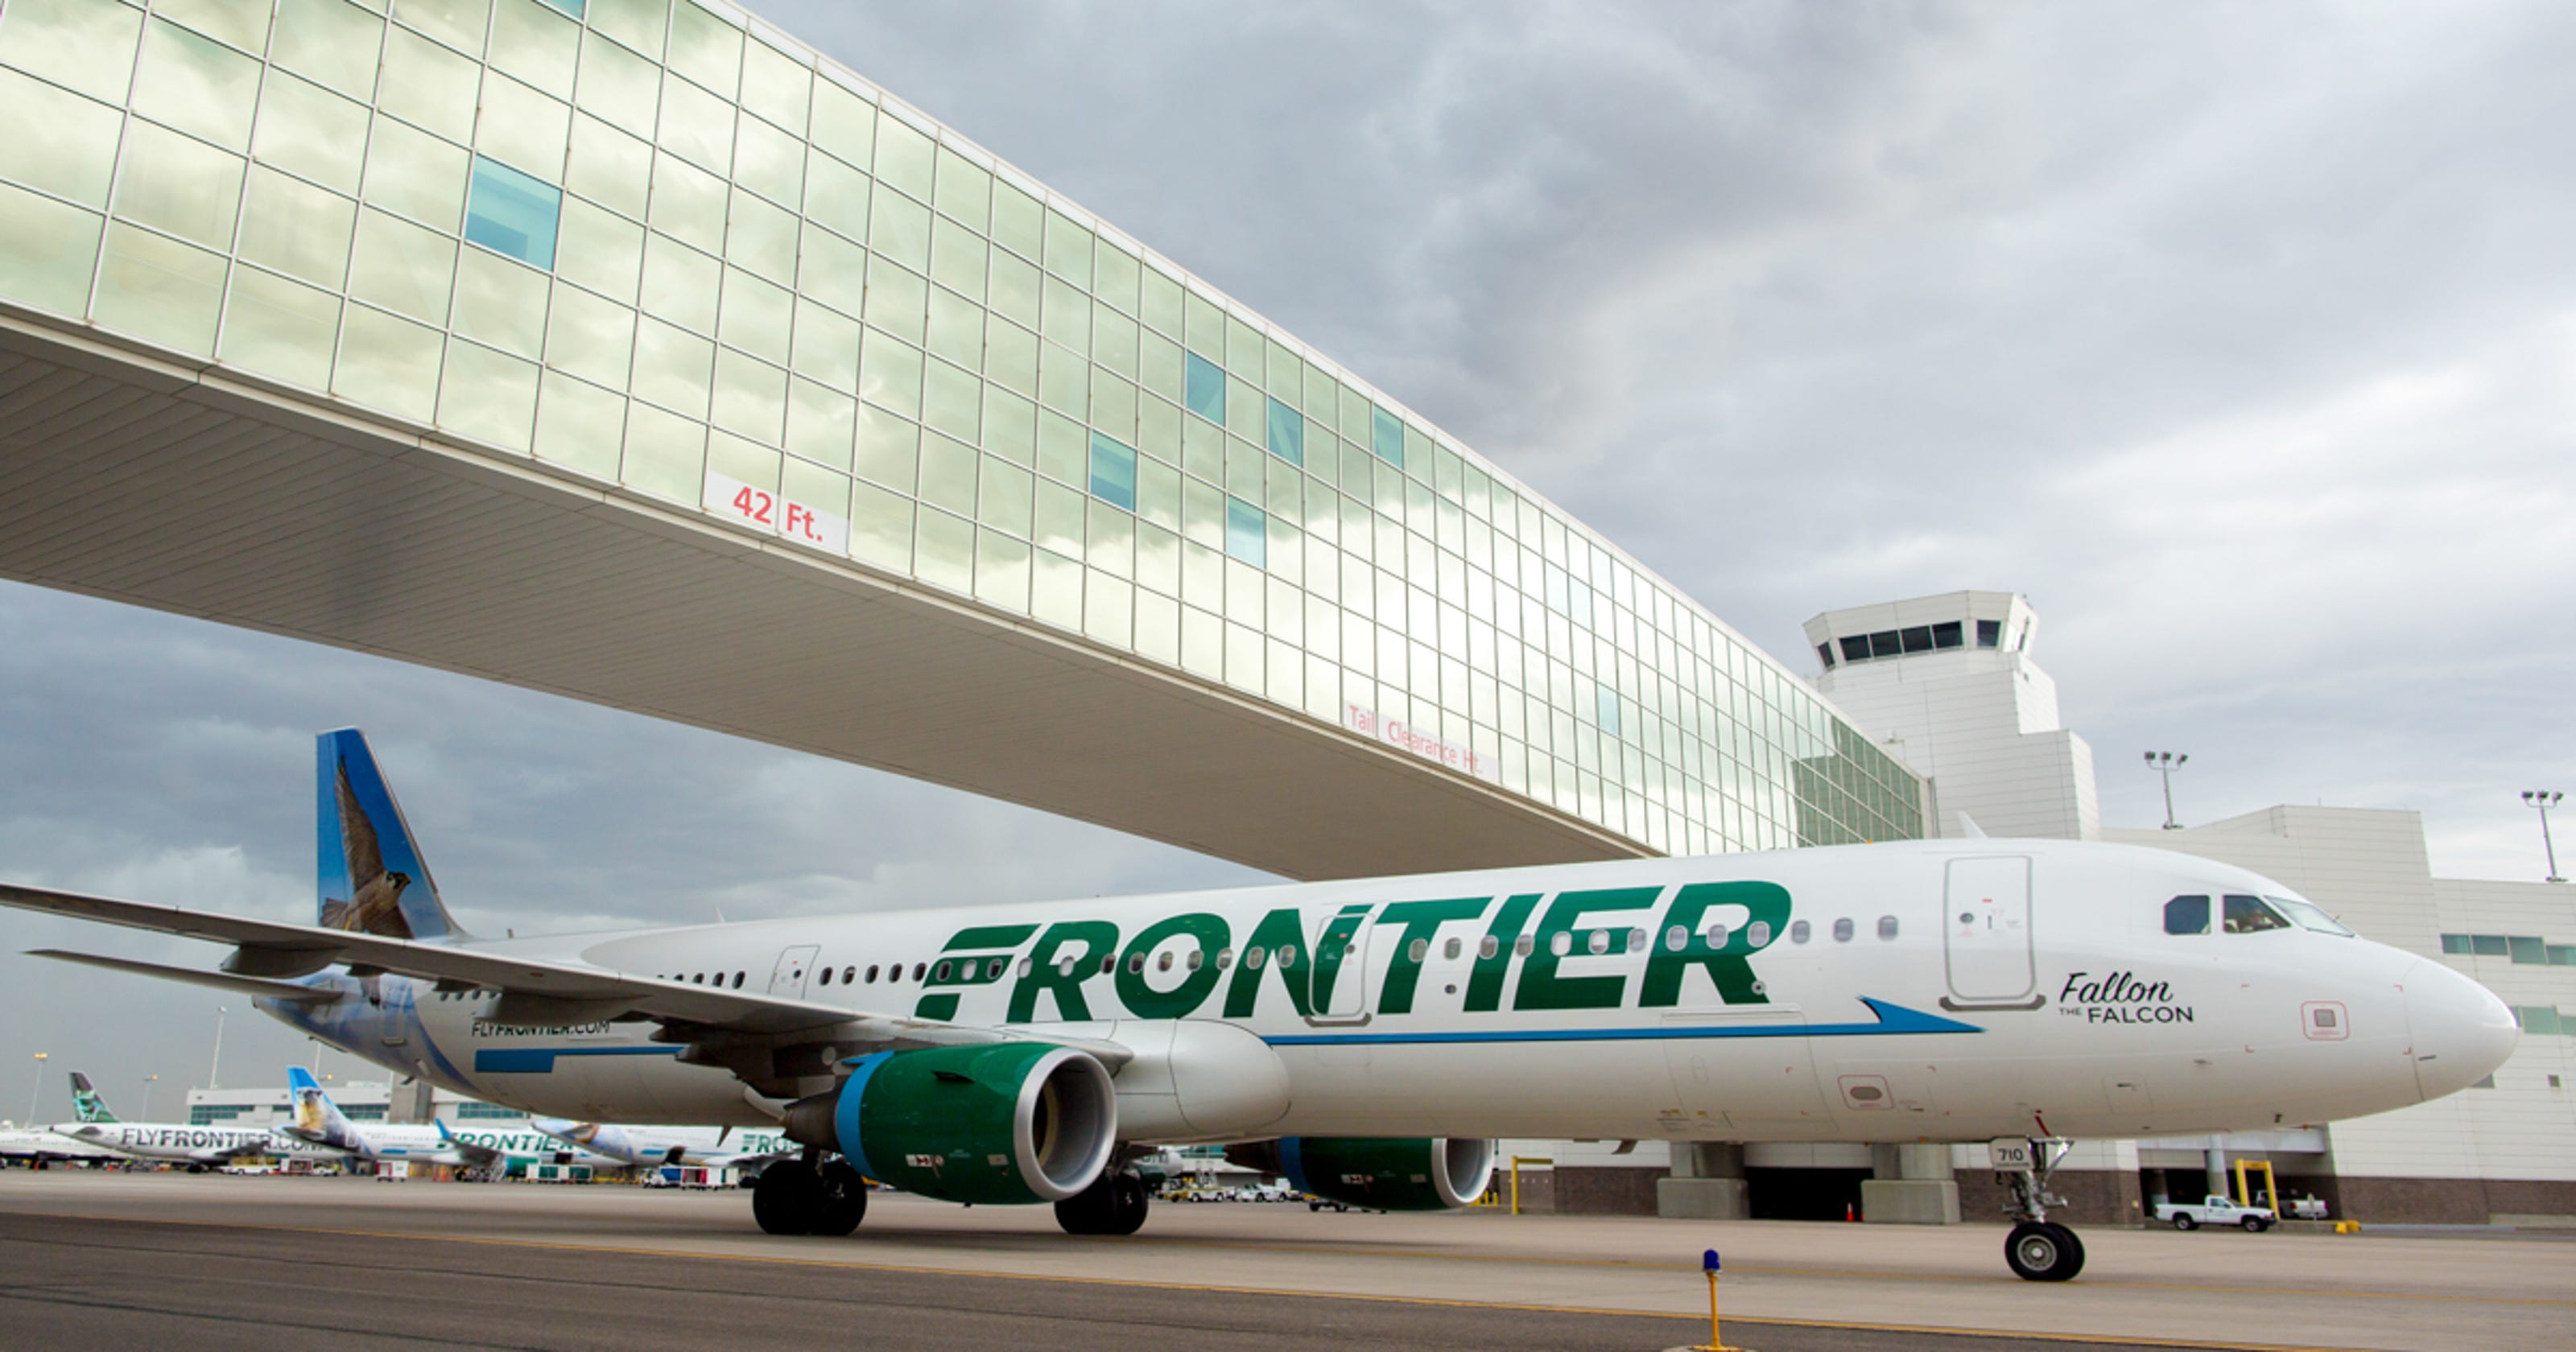 Frontier Airlines: Sacramento, Santa Barbara, Raleigh in growth plans